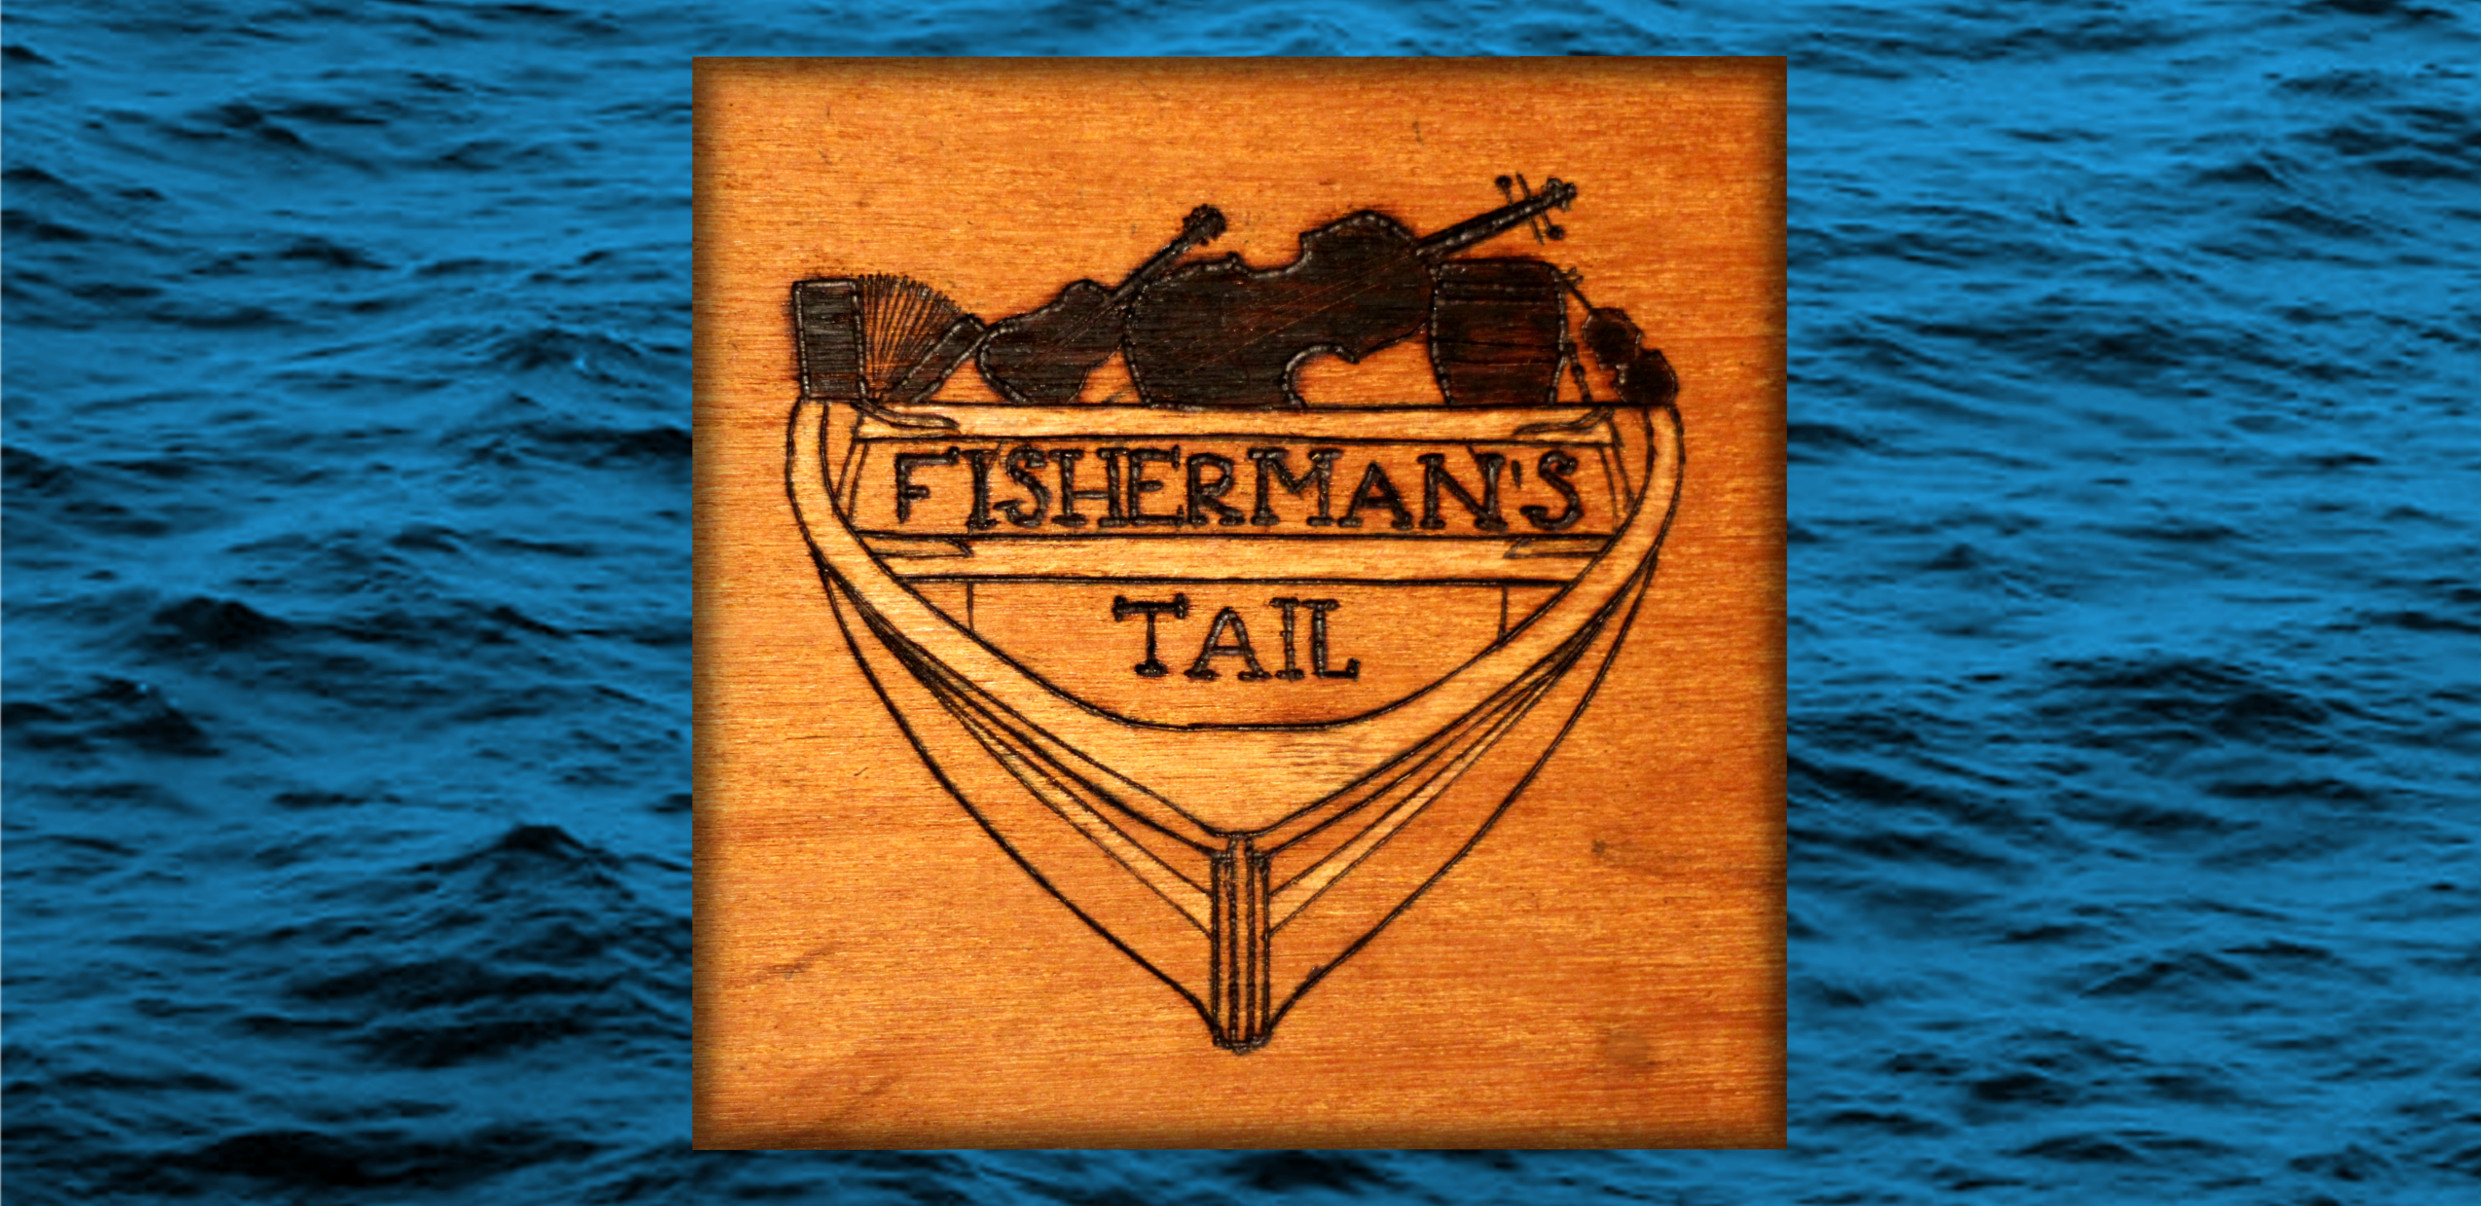 fishermans tail image